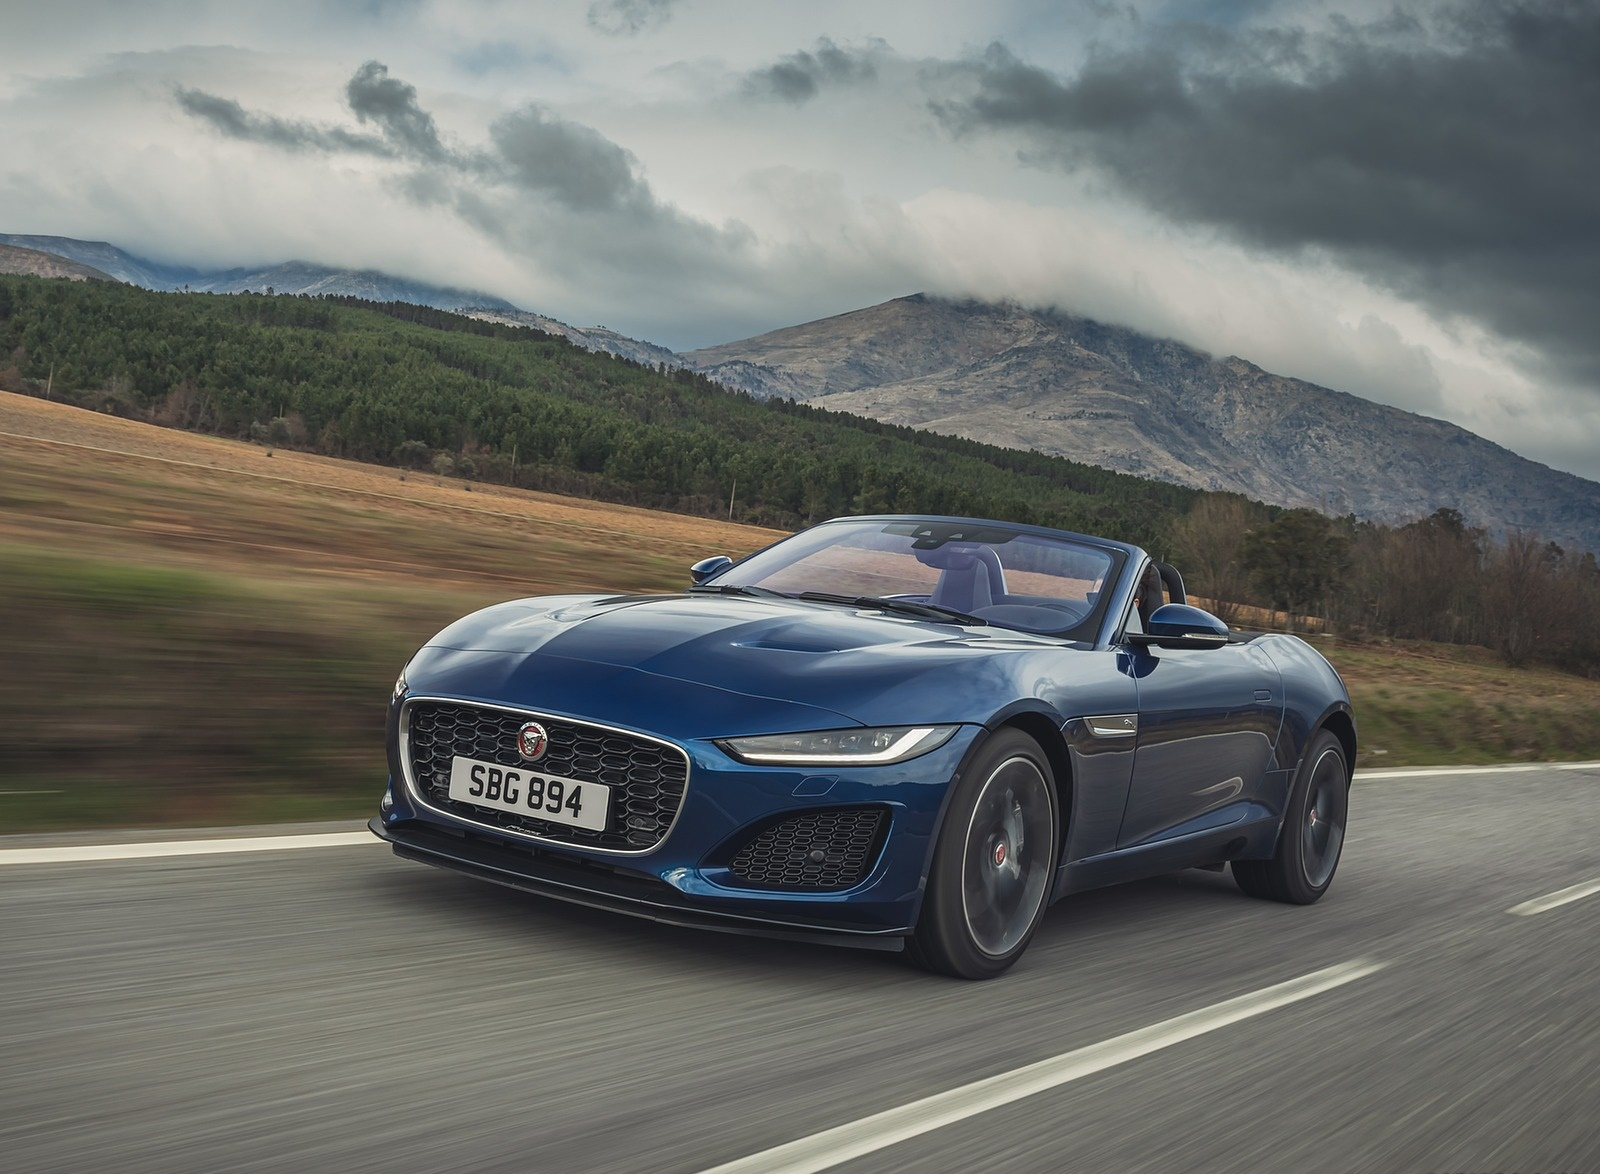 2021 Jaguar F-TYPE P300 Convertible RWD (Color: Bluefire) Front Three-Quarter Wallpapers (1)